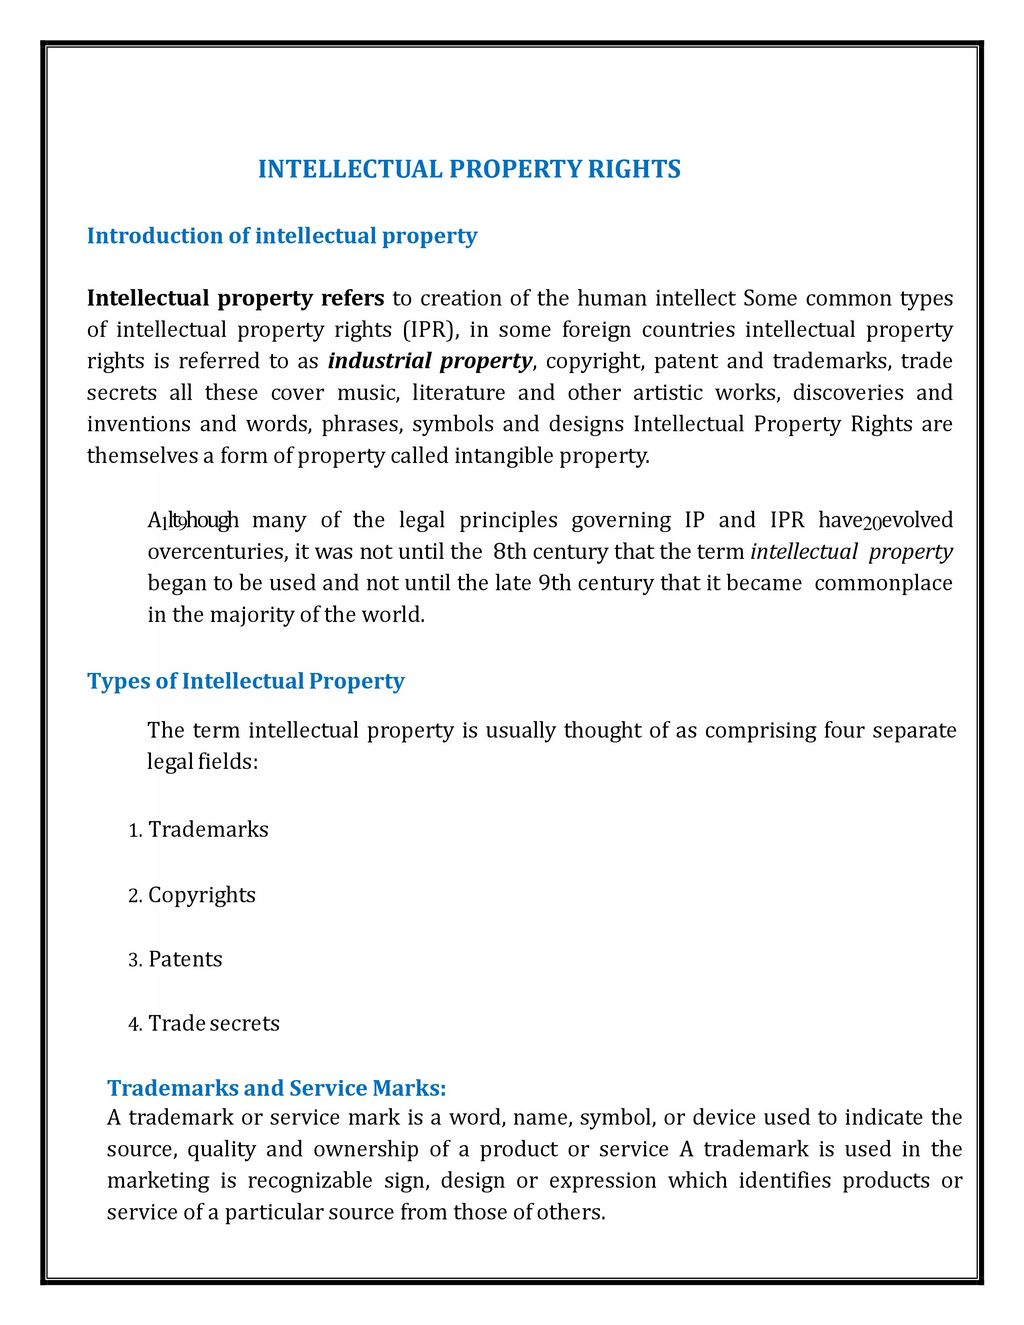 Intellectual property rights lecture notes ppt download 2 intellectual property rights biocorpaavc Image collections